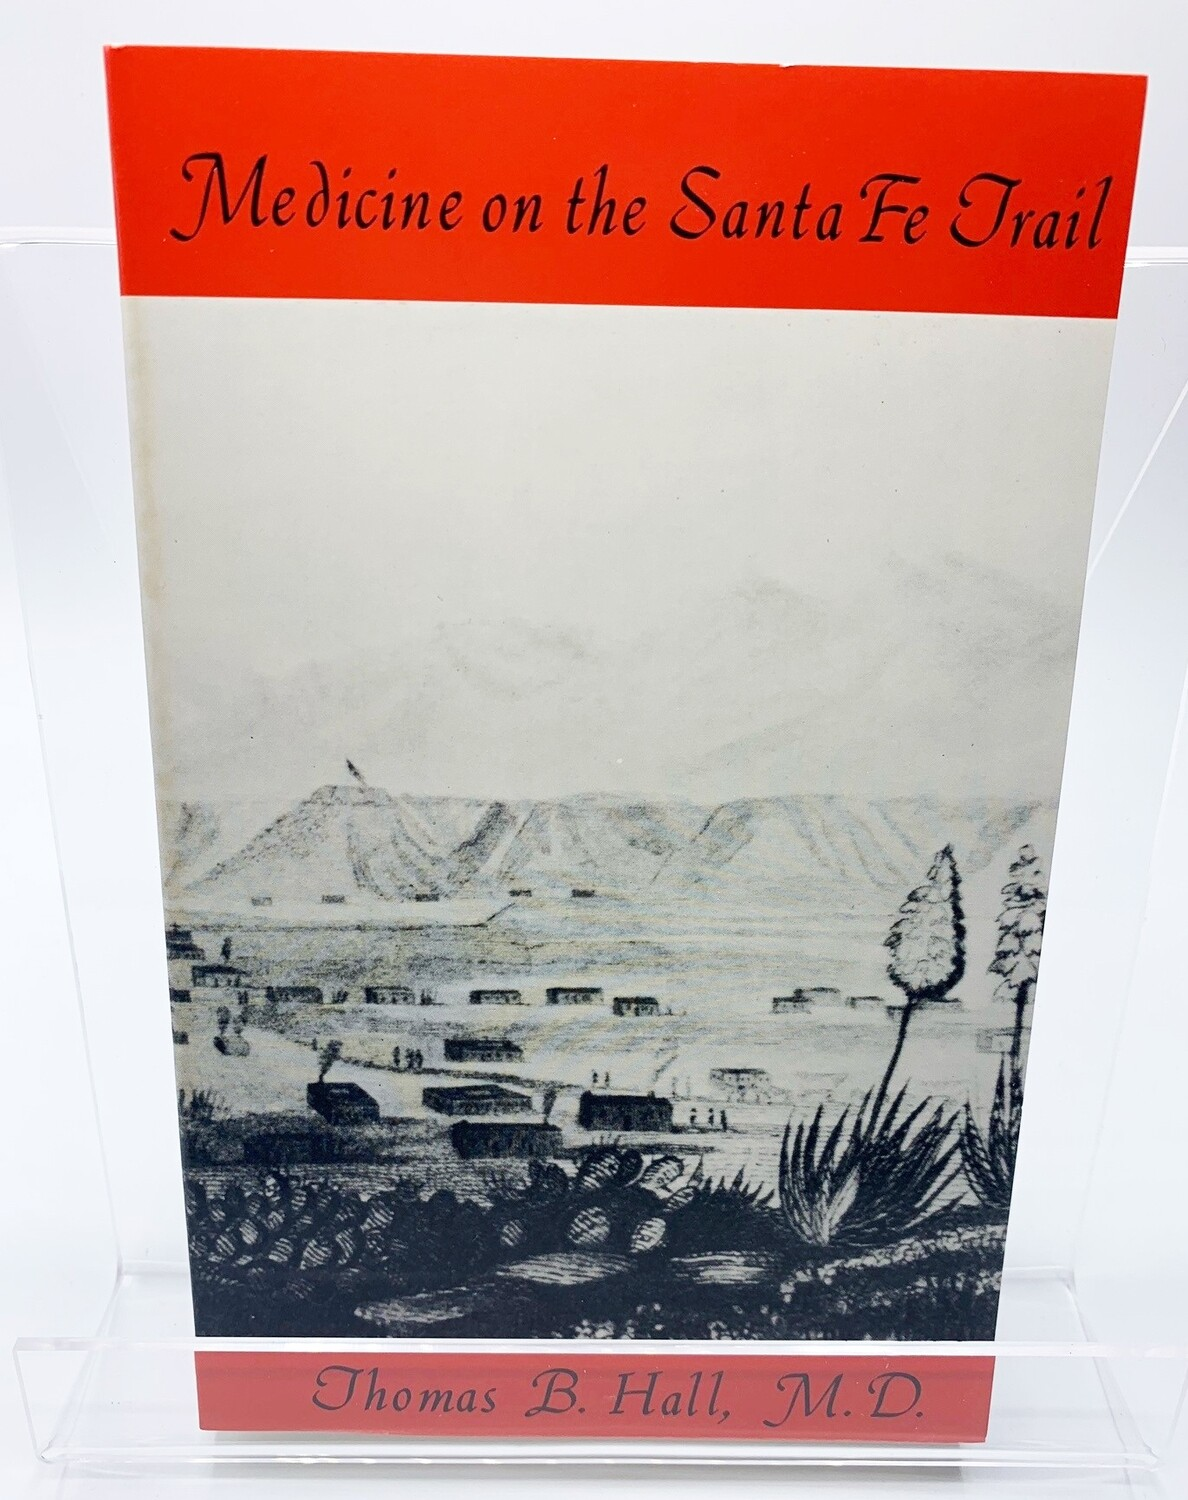 MEDICINE ON THE SANTA FE TRAIL